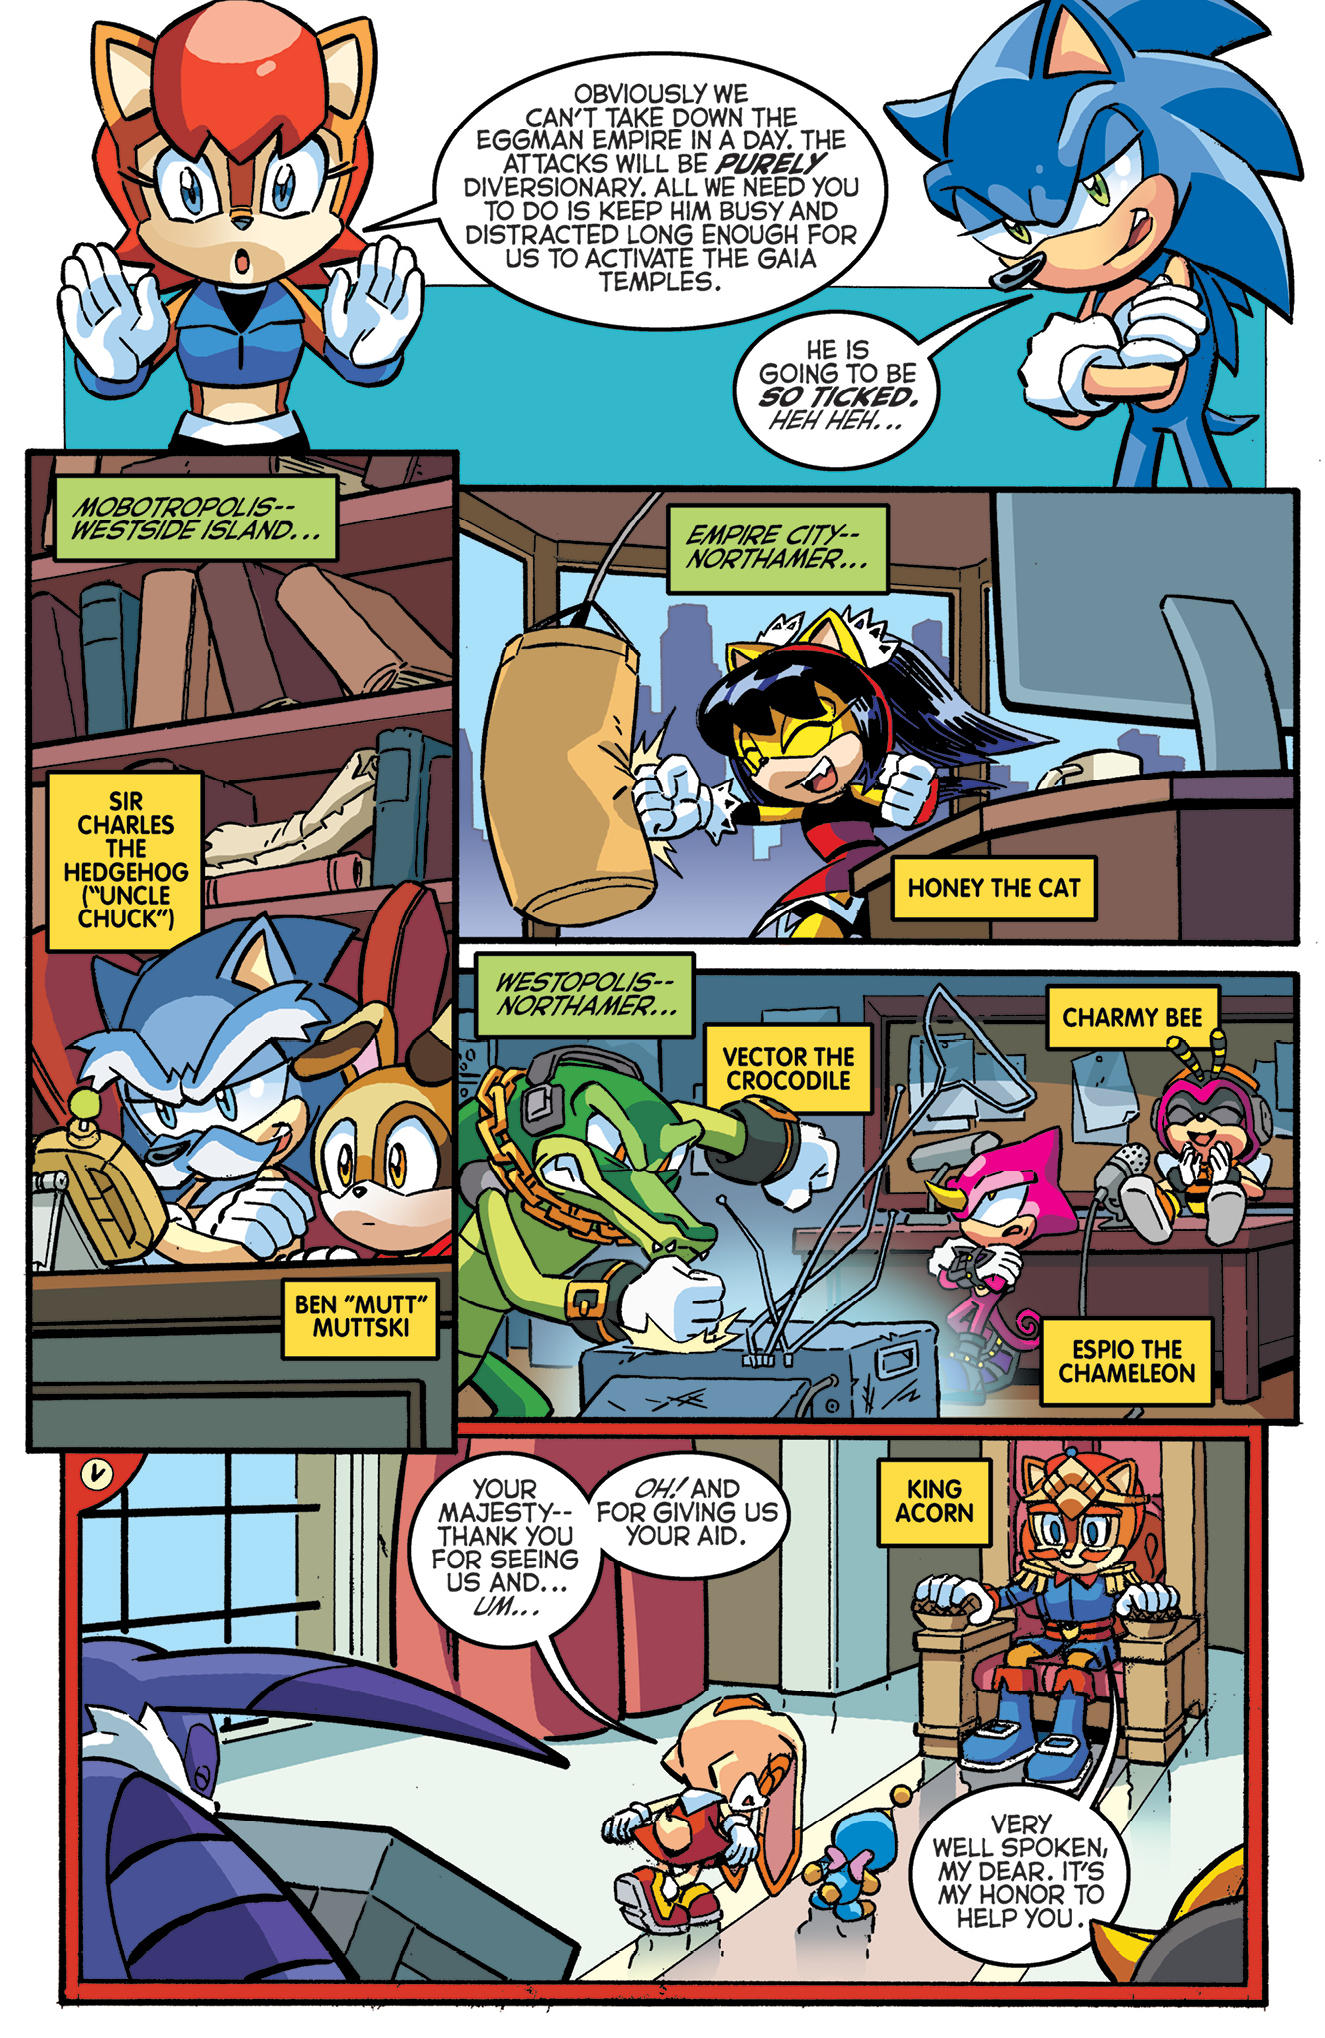 Rallying The Troops Part 2 Archie Sonic Comics Know Your Meme